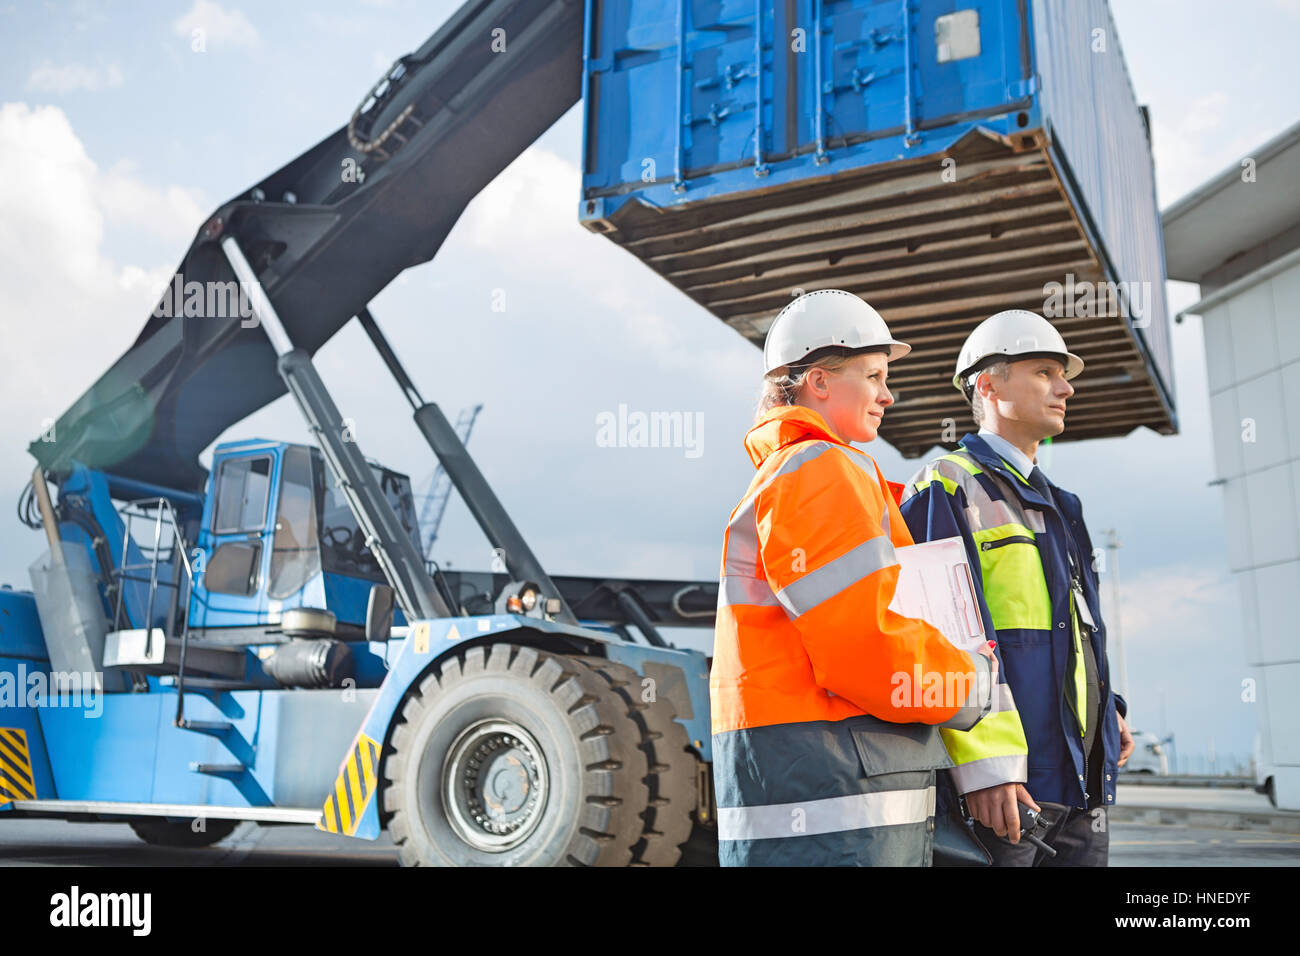 Male and female workers standing by freight vehicle in shipping yard - Stock Image